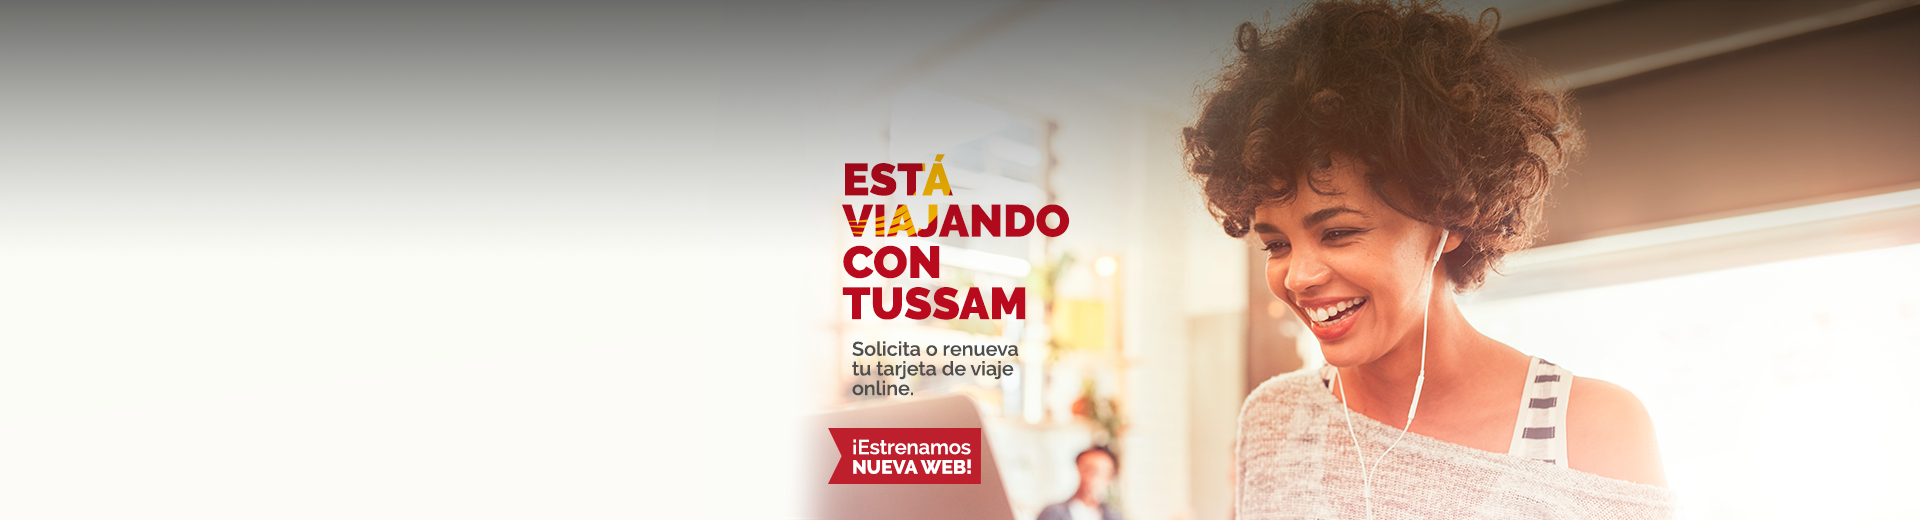 https://www.tussam.es/sites/default/files/revslider/image/Slider_1920x520_01.png